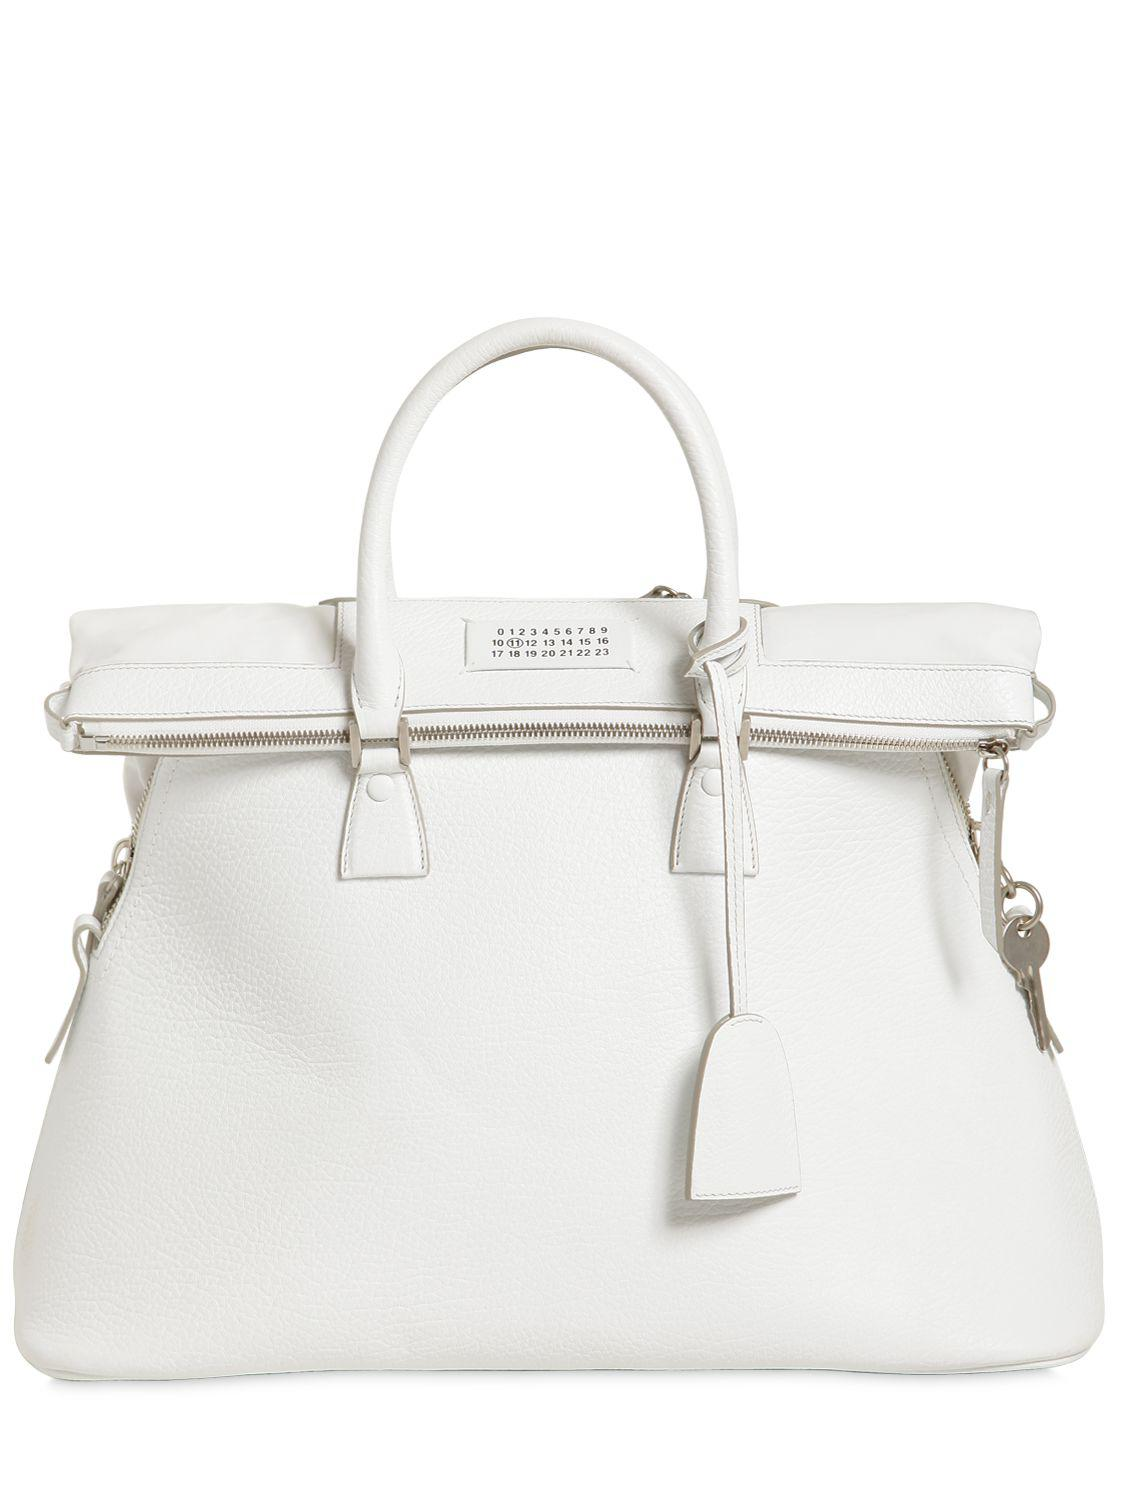 Cheap Footlocker 5AC Top Handle Bag in Crocodile Stamped Leather Maison Martin Margiela Discount Popular With Credit Card Choice Sale Online Get Authentic Online nXhnPJWb